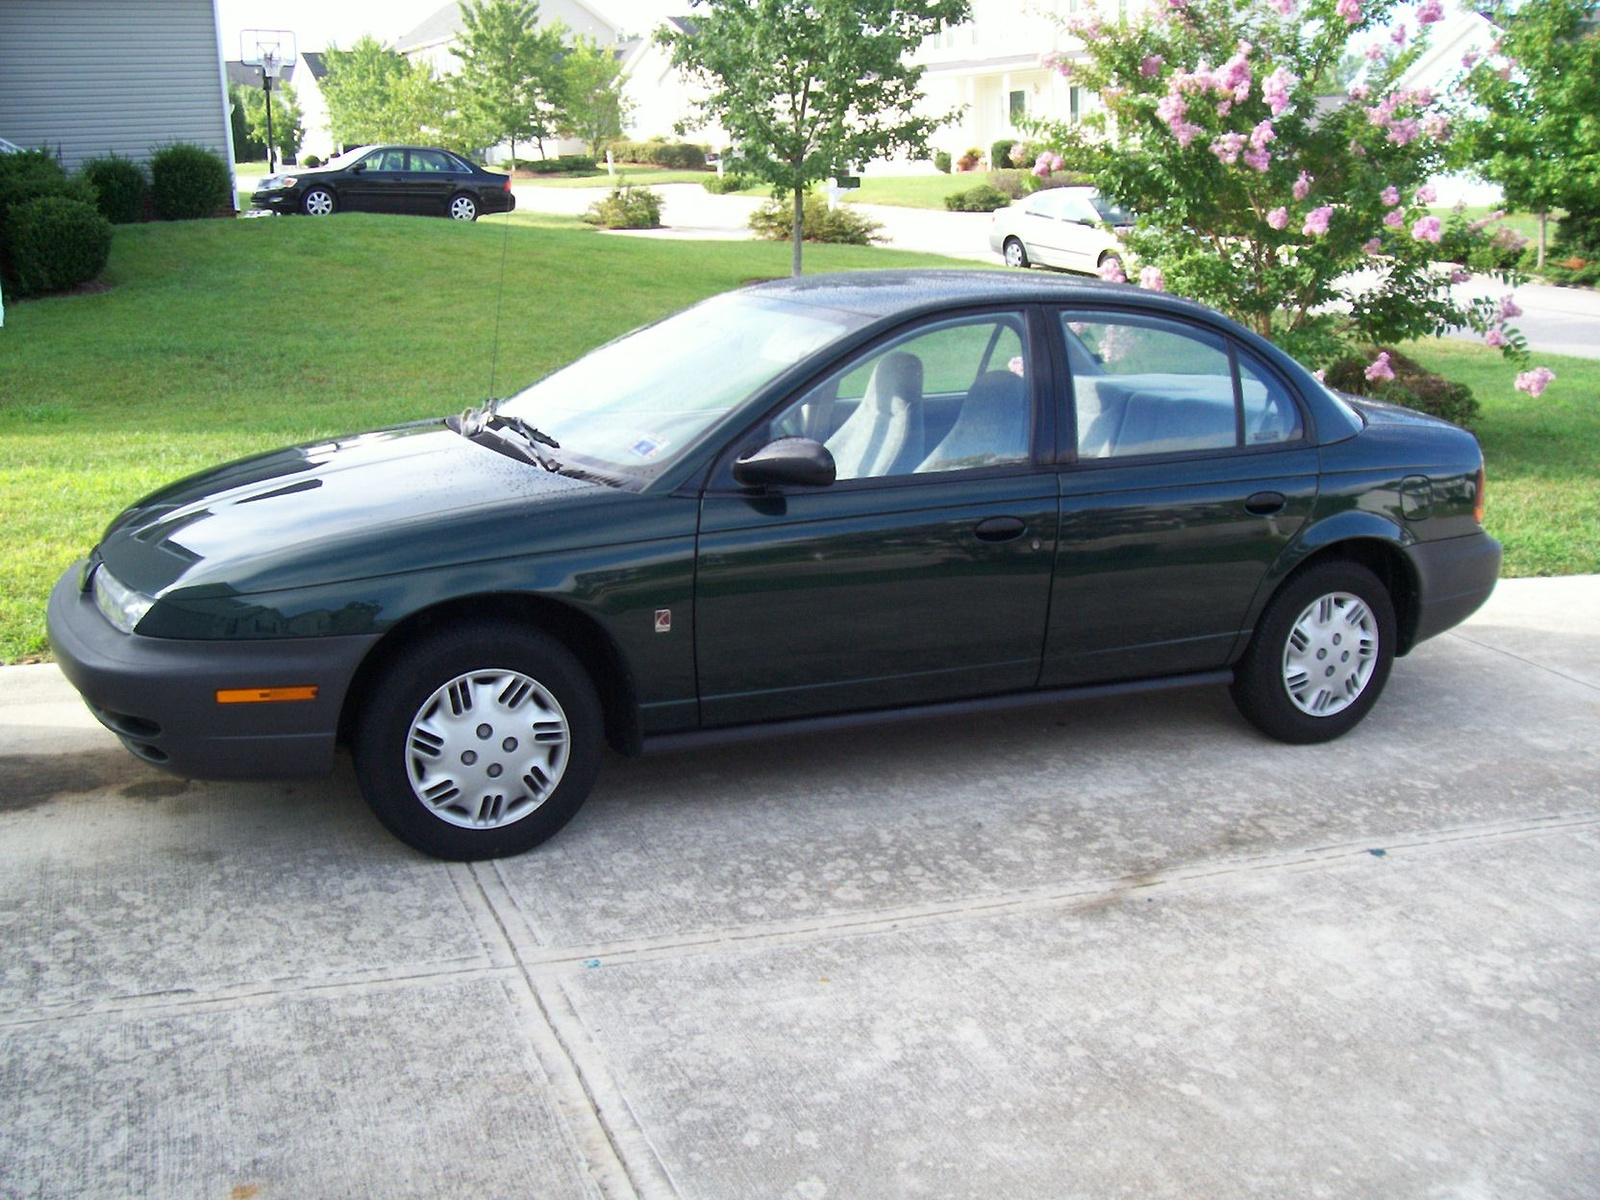 1997 Saturn S-Series 4 Dr SL Sedan picture